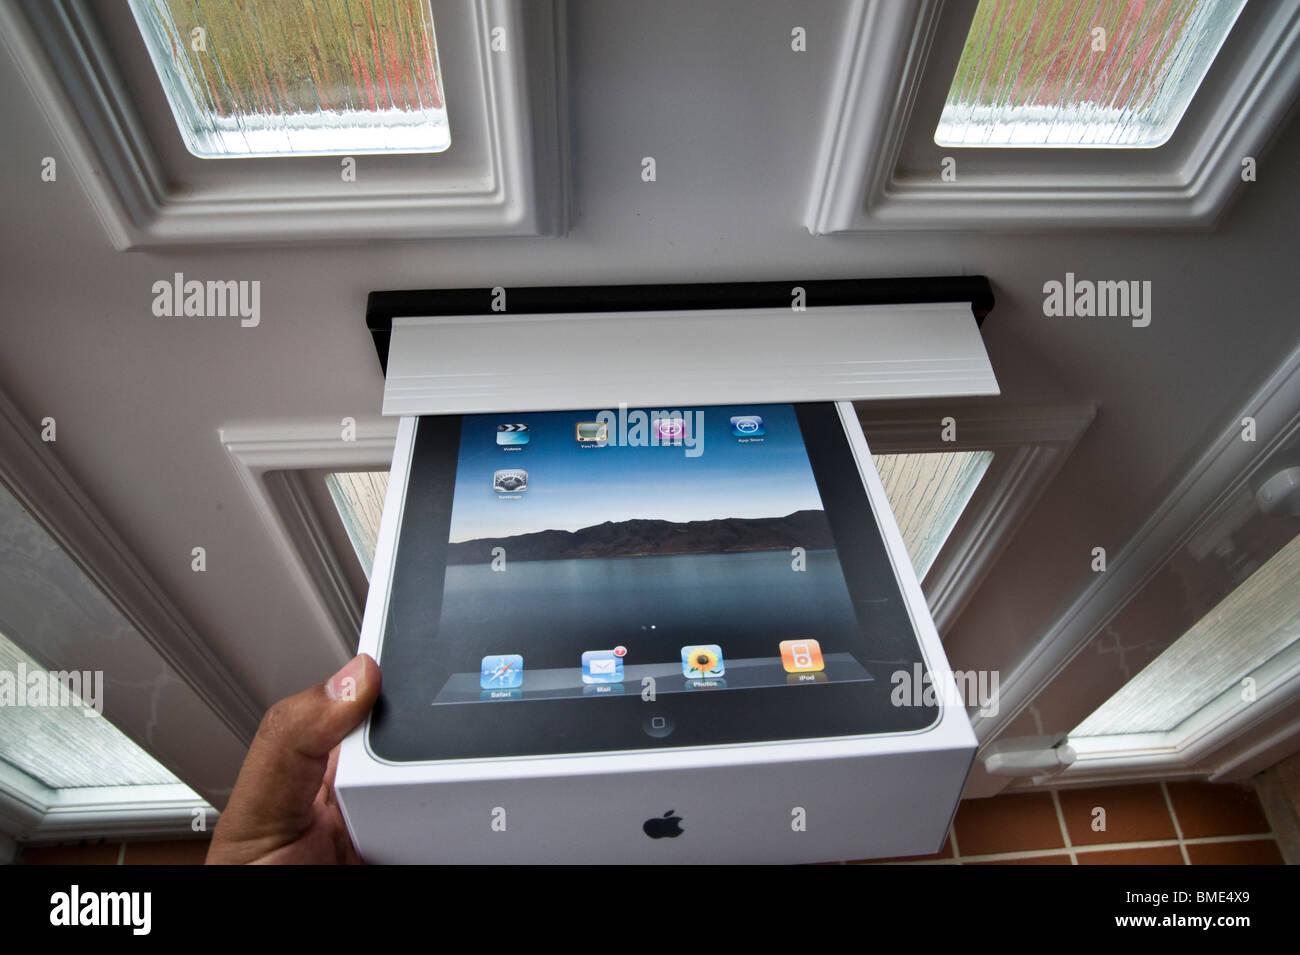 The long awaited Apple iPad is delivered by post. Stock Photo